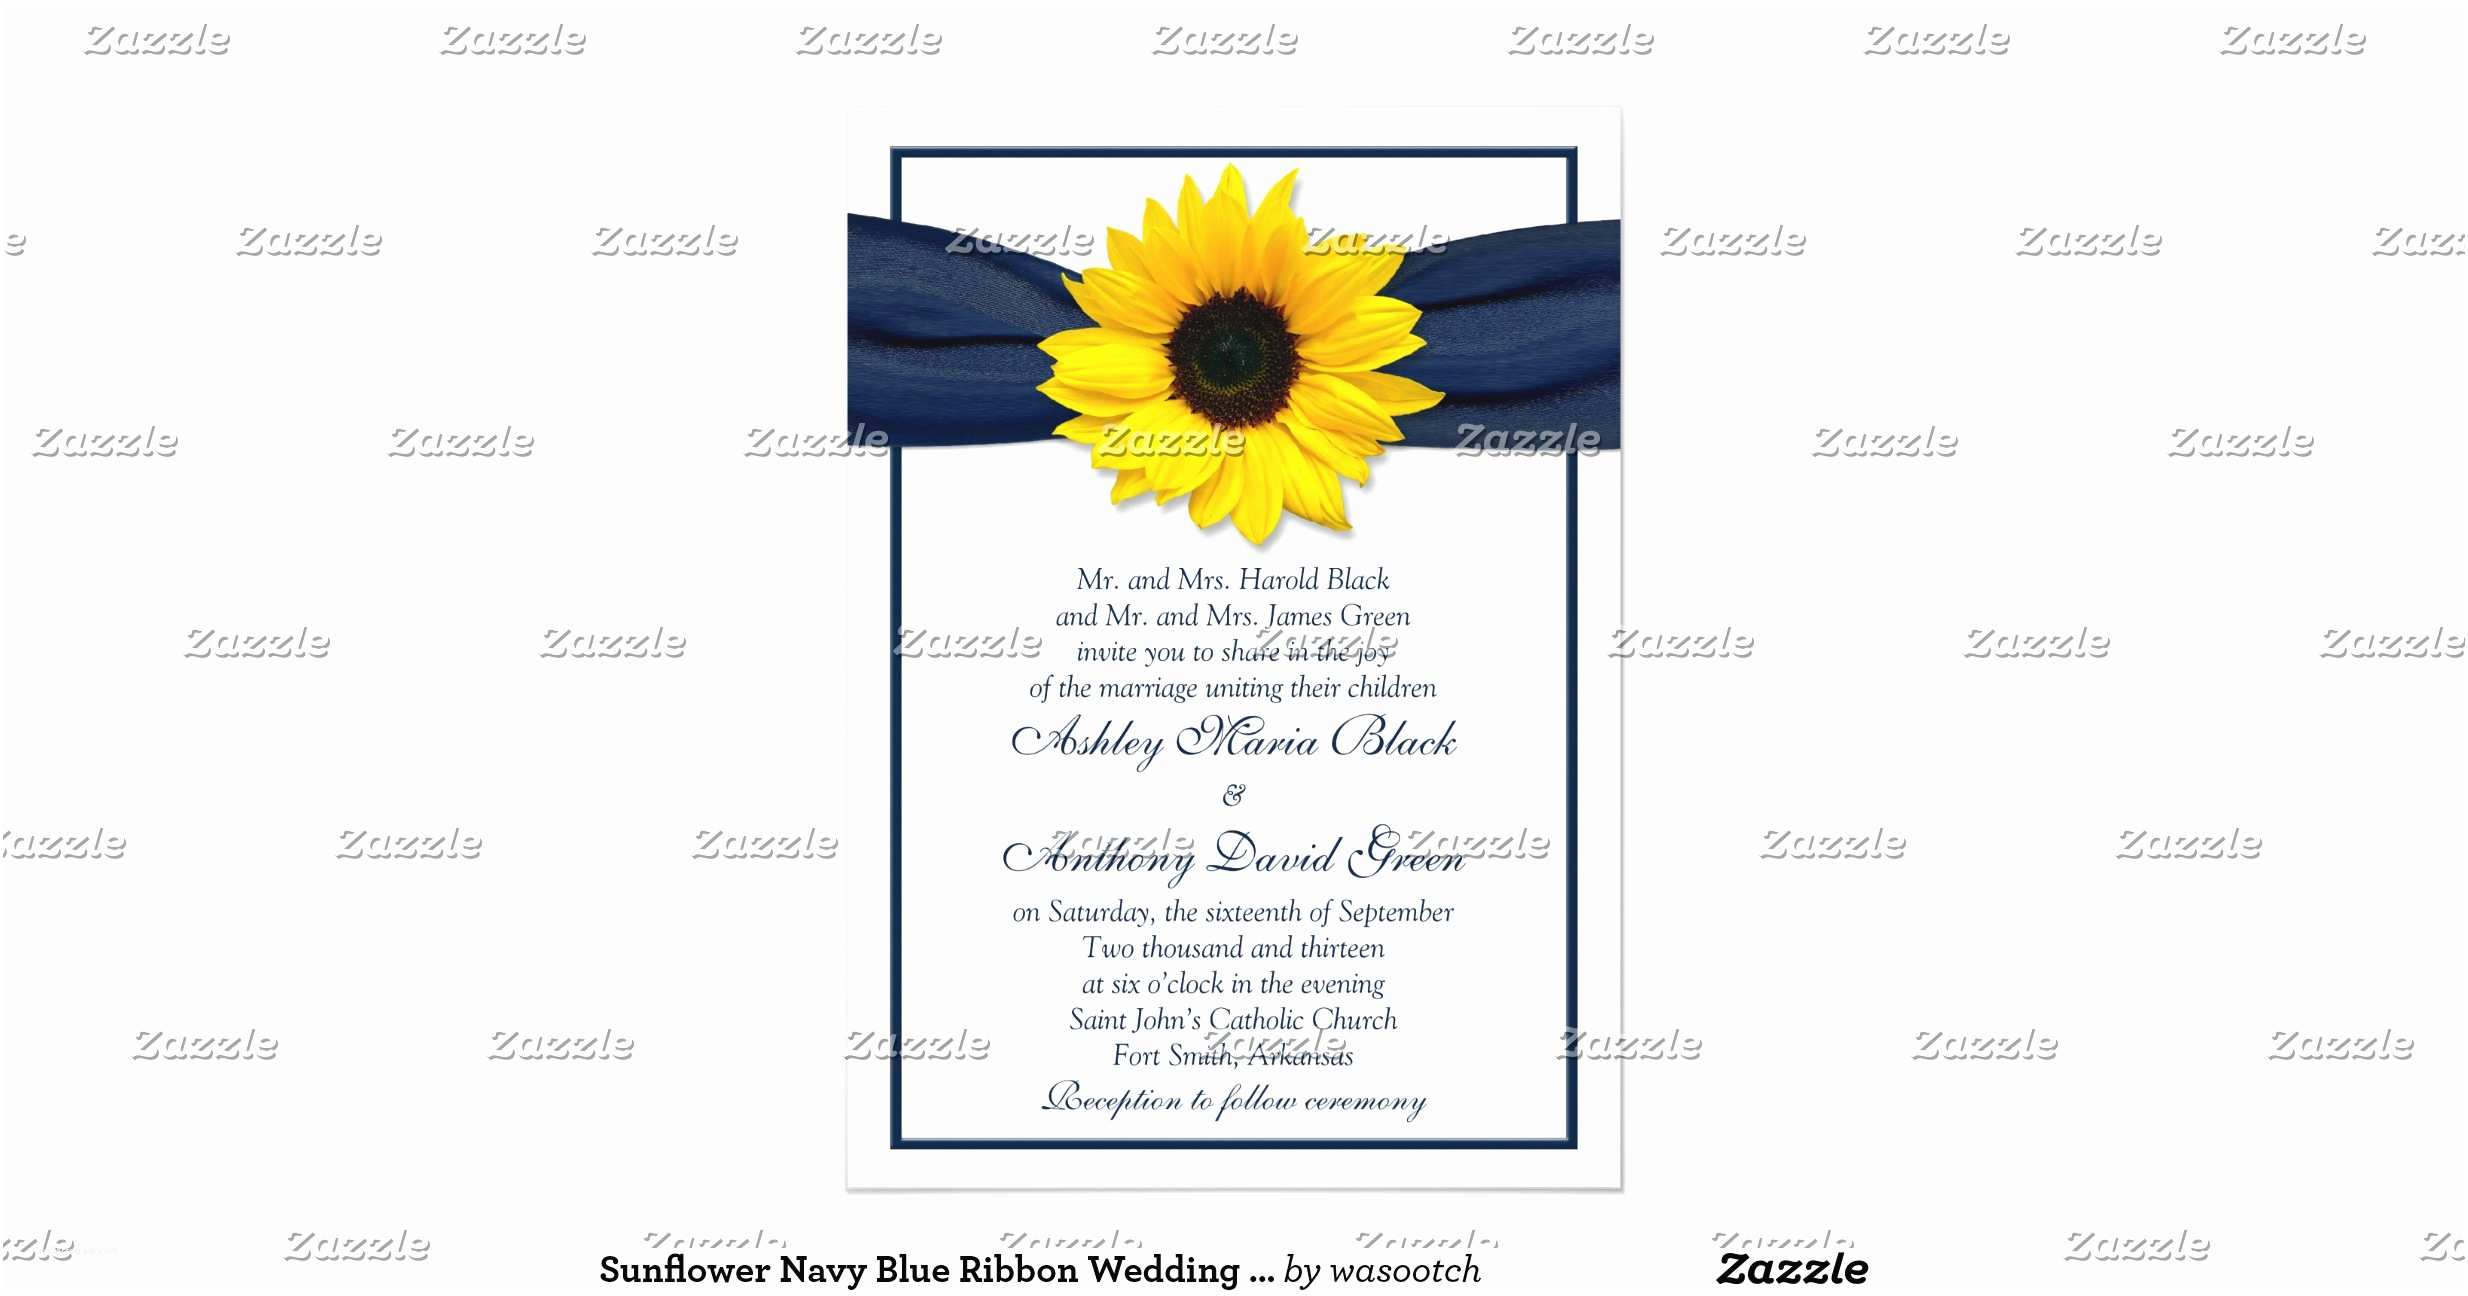 Navy Blue and Sunflower Wedding Invitations Sunflower Navy Blue Ribbon Wedding Invitation